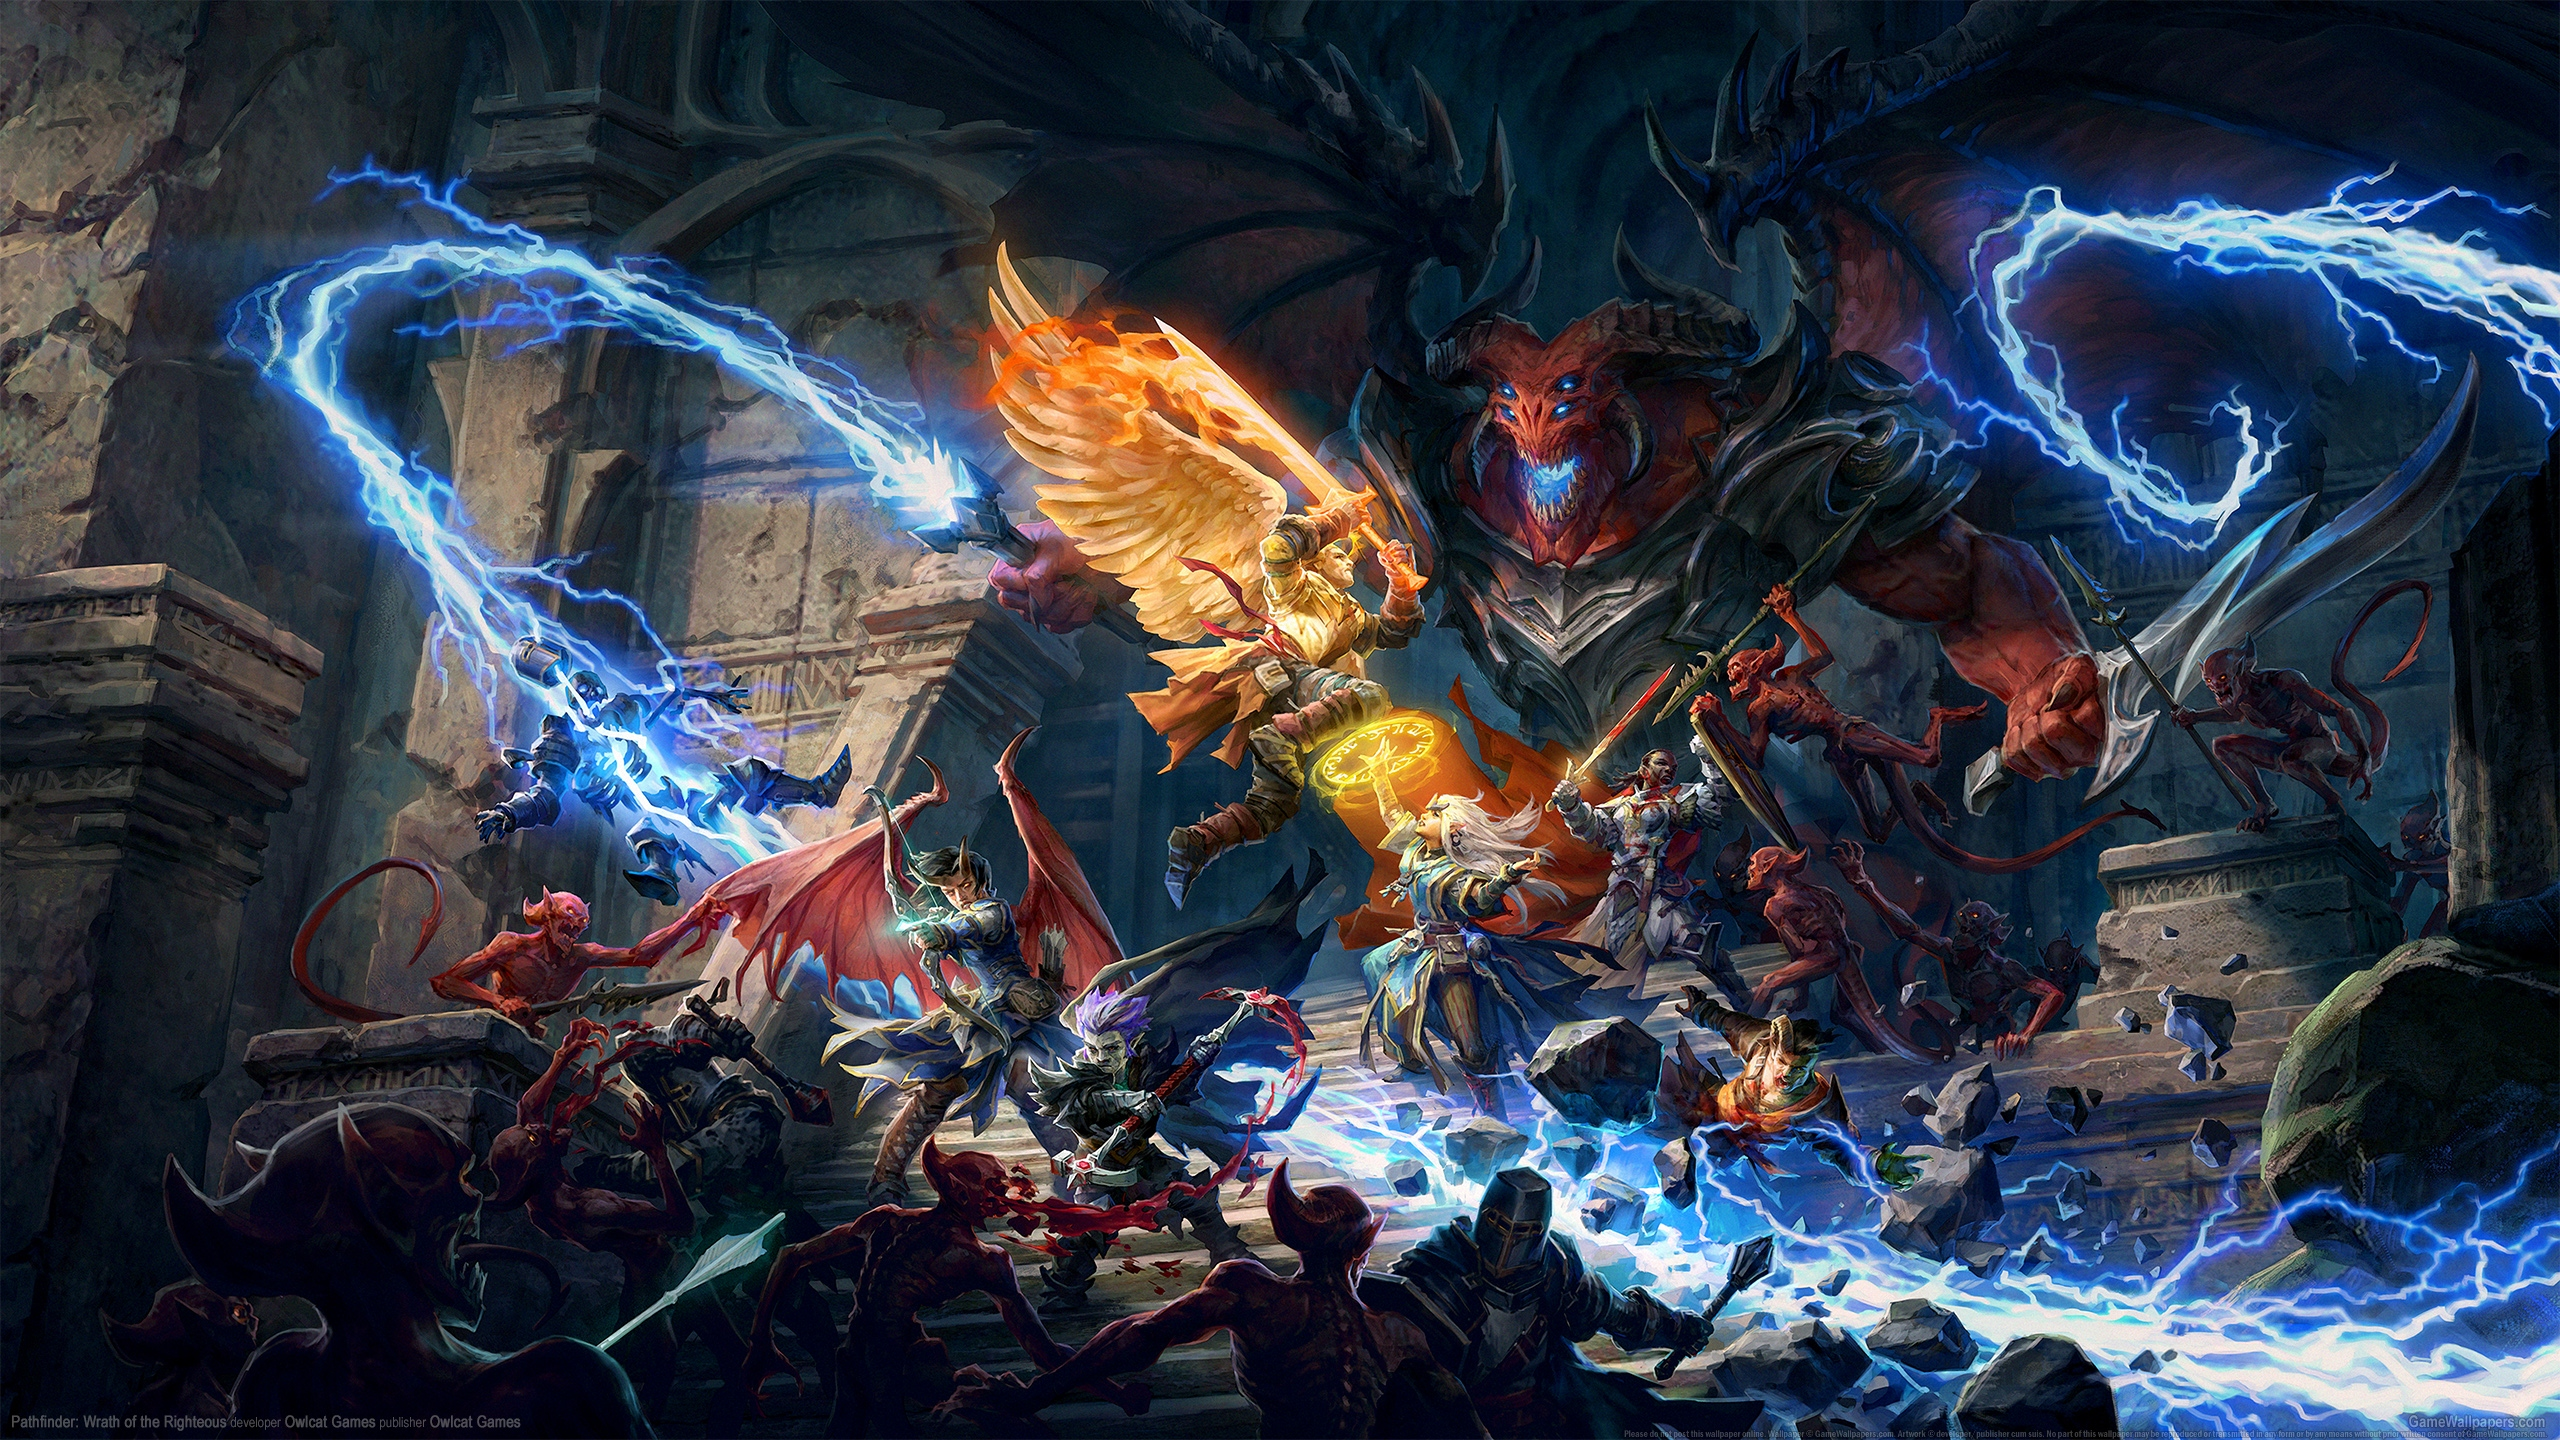 Pathfinder: Wrath of the Righteous 2560x1440 wallpaper or background 01